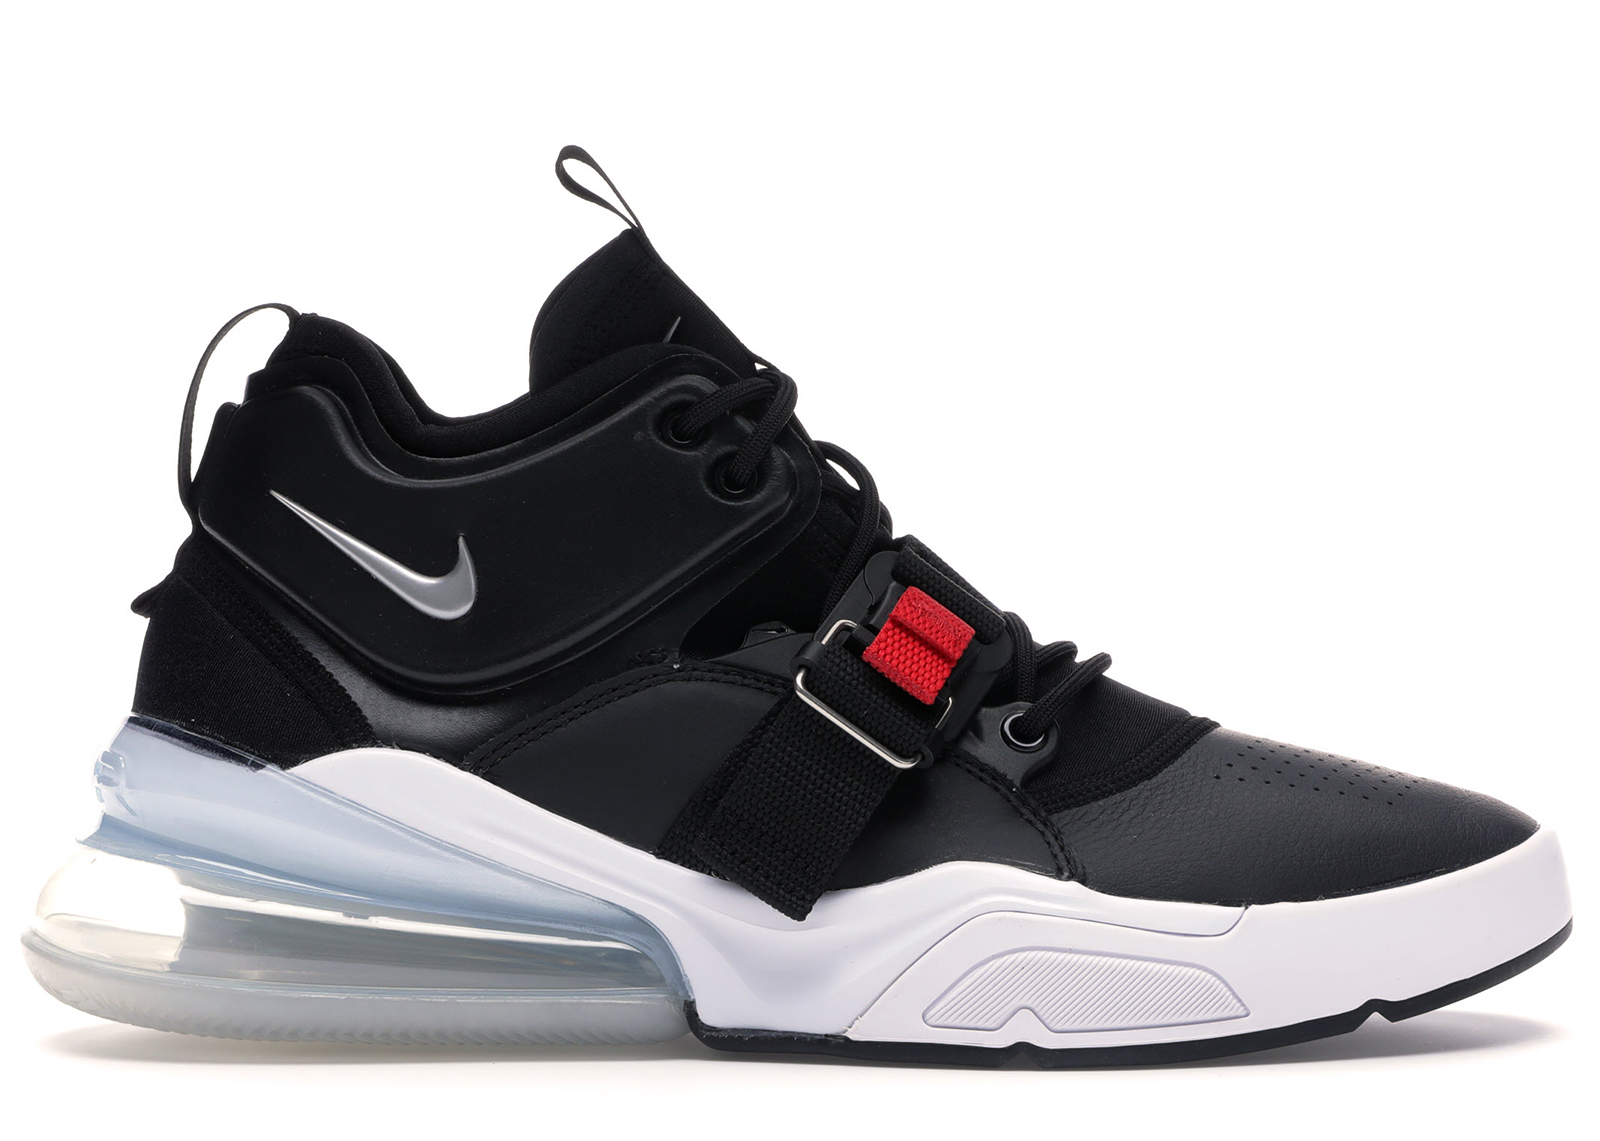 Off White x Nike Air Force 270 WhiteBlack Shoes in 2019